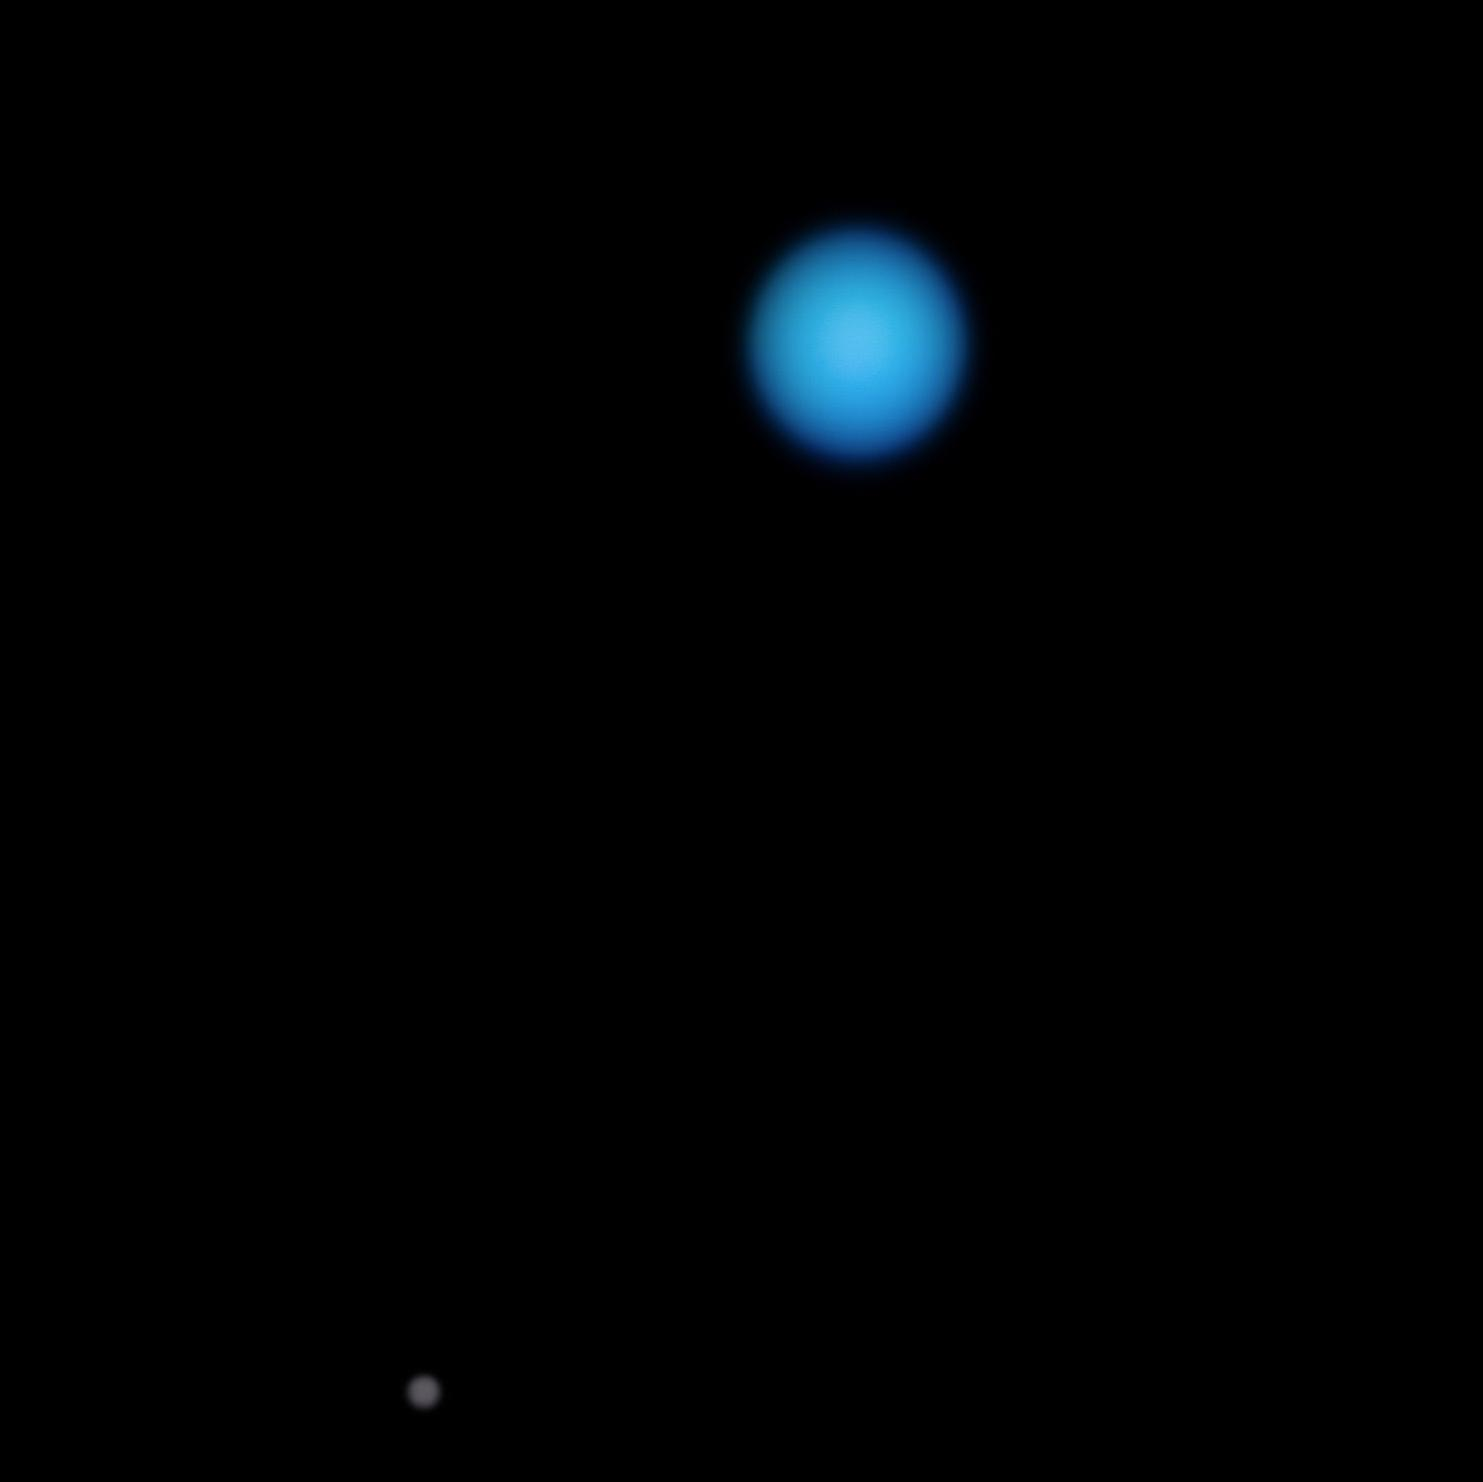 2. 7 billion miles away from the Sun, here's an image of Neptune, the last planet in our Solar System